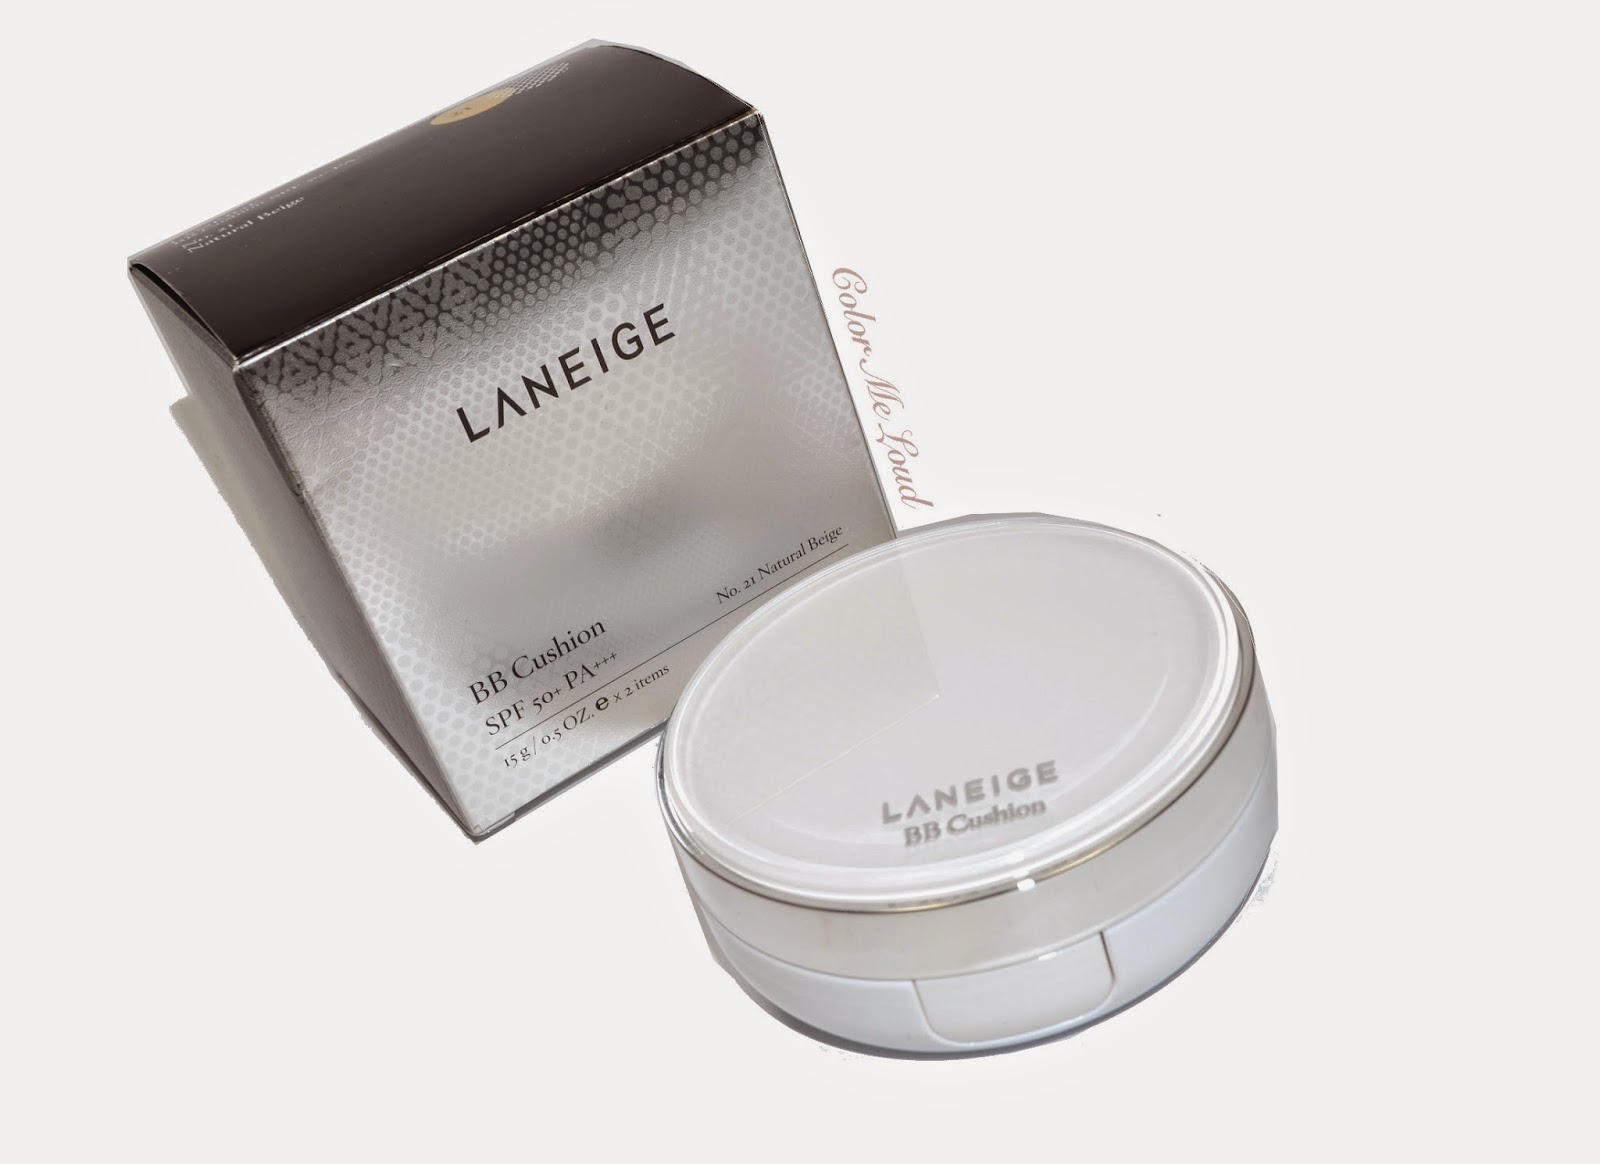 Laneige Bb Cushion Natural Beige Review